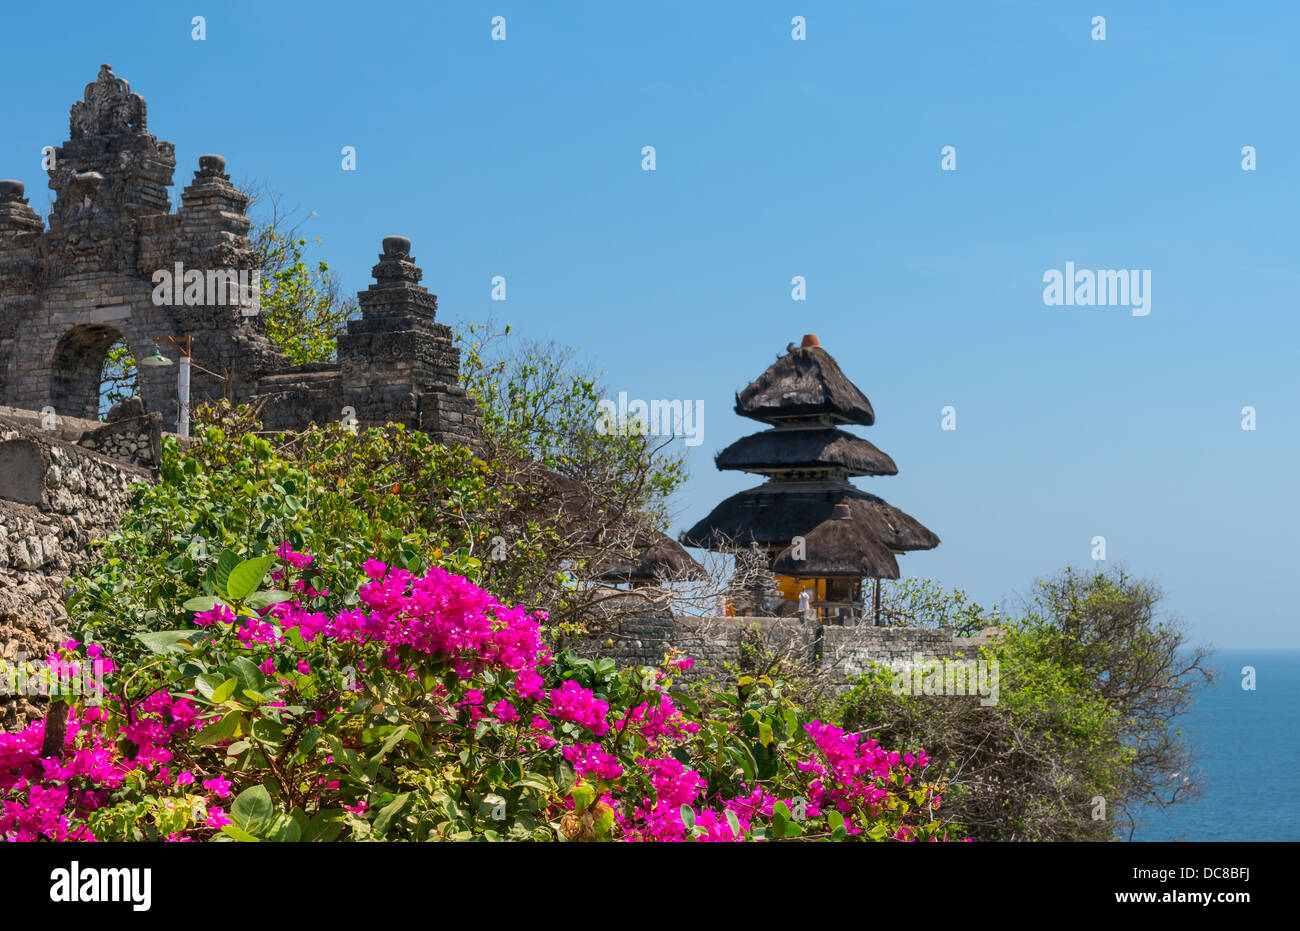 Pura Luhur Uluwatu Temple, Bali on cliffs above blue tropical sea with pink flowers on front - Stock Image